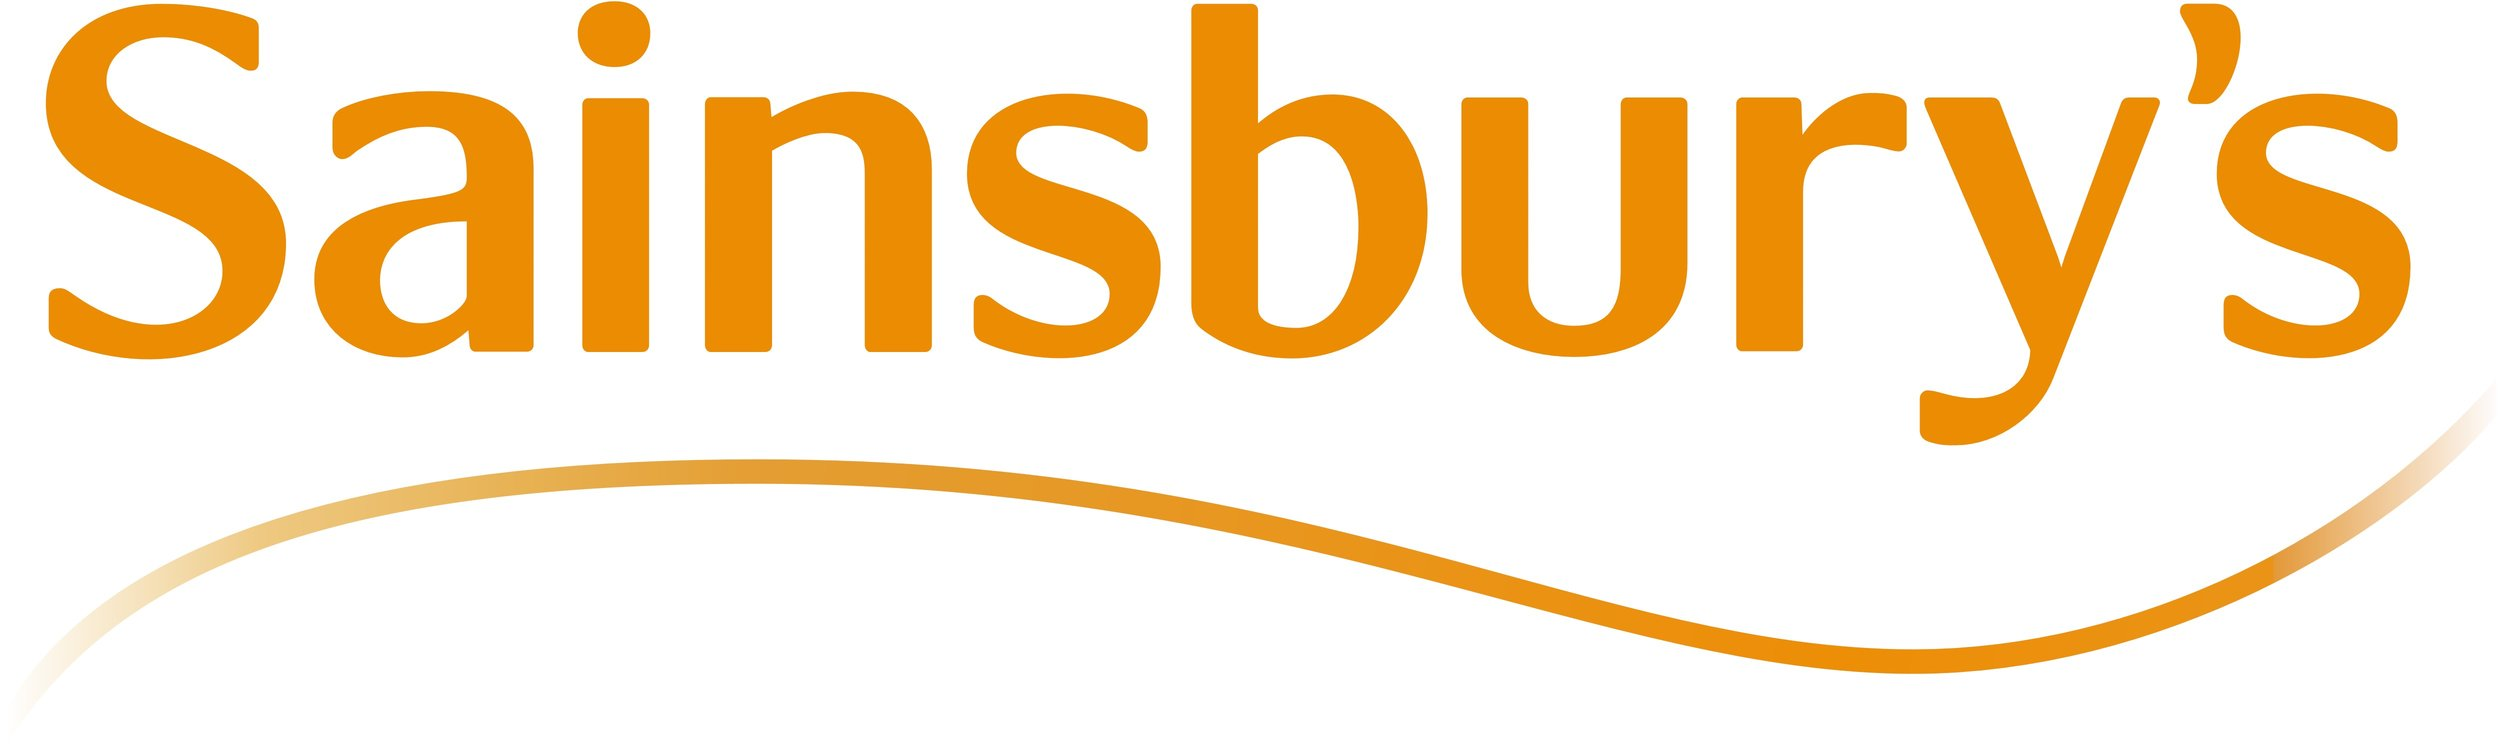 Copy of Copy of Sainsburys logo